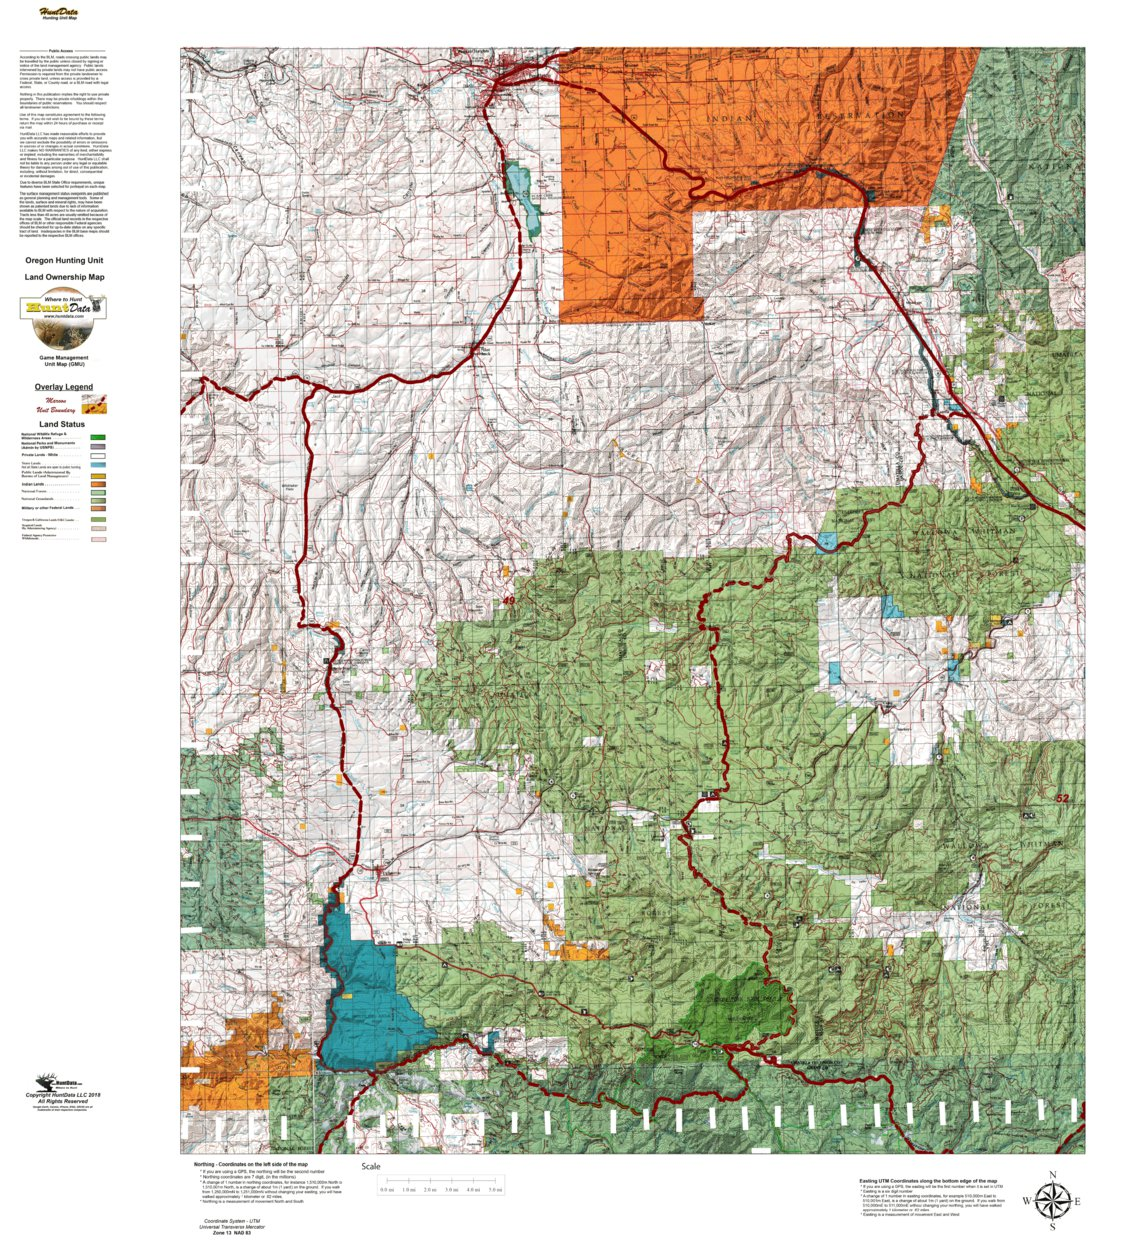 Oregon Hunting Unit 49 Ukiah Land Ownership Map Huntdata